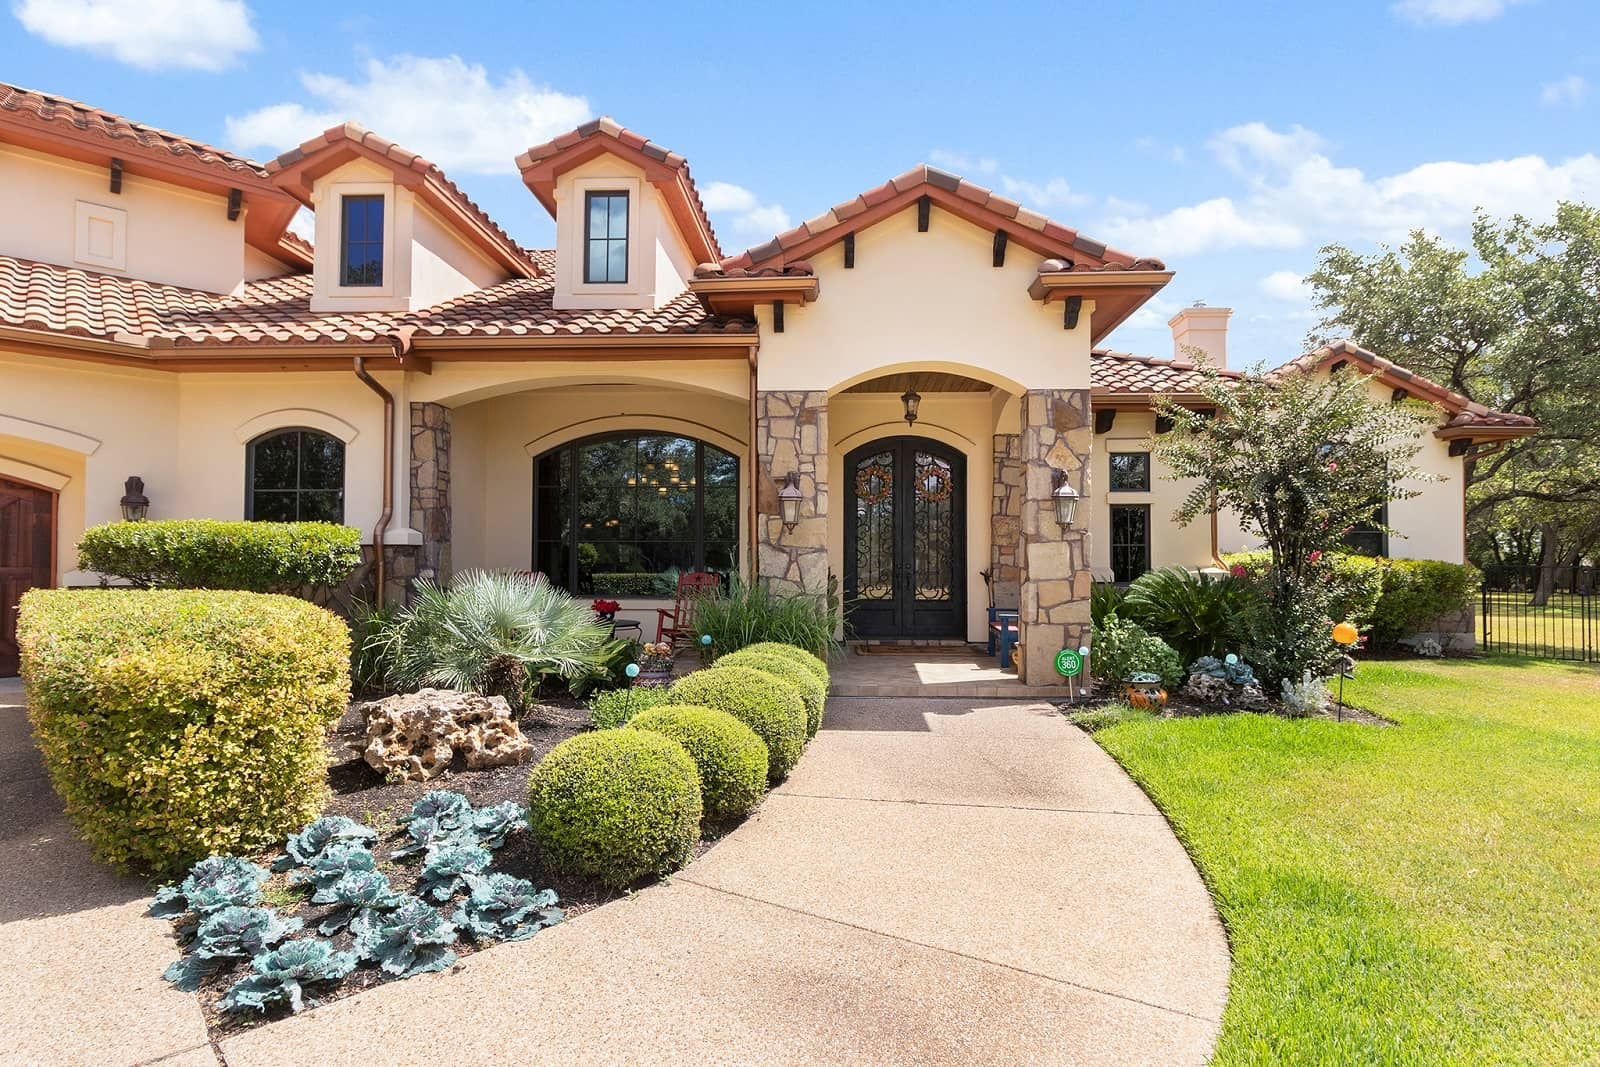 Real Estate Photography in Cedar Park - TX - Front View